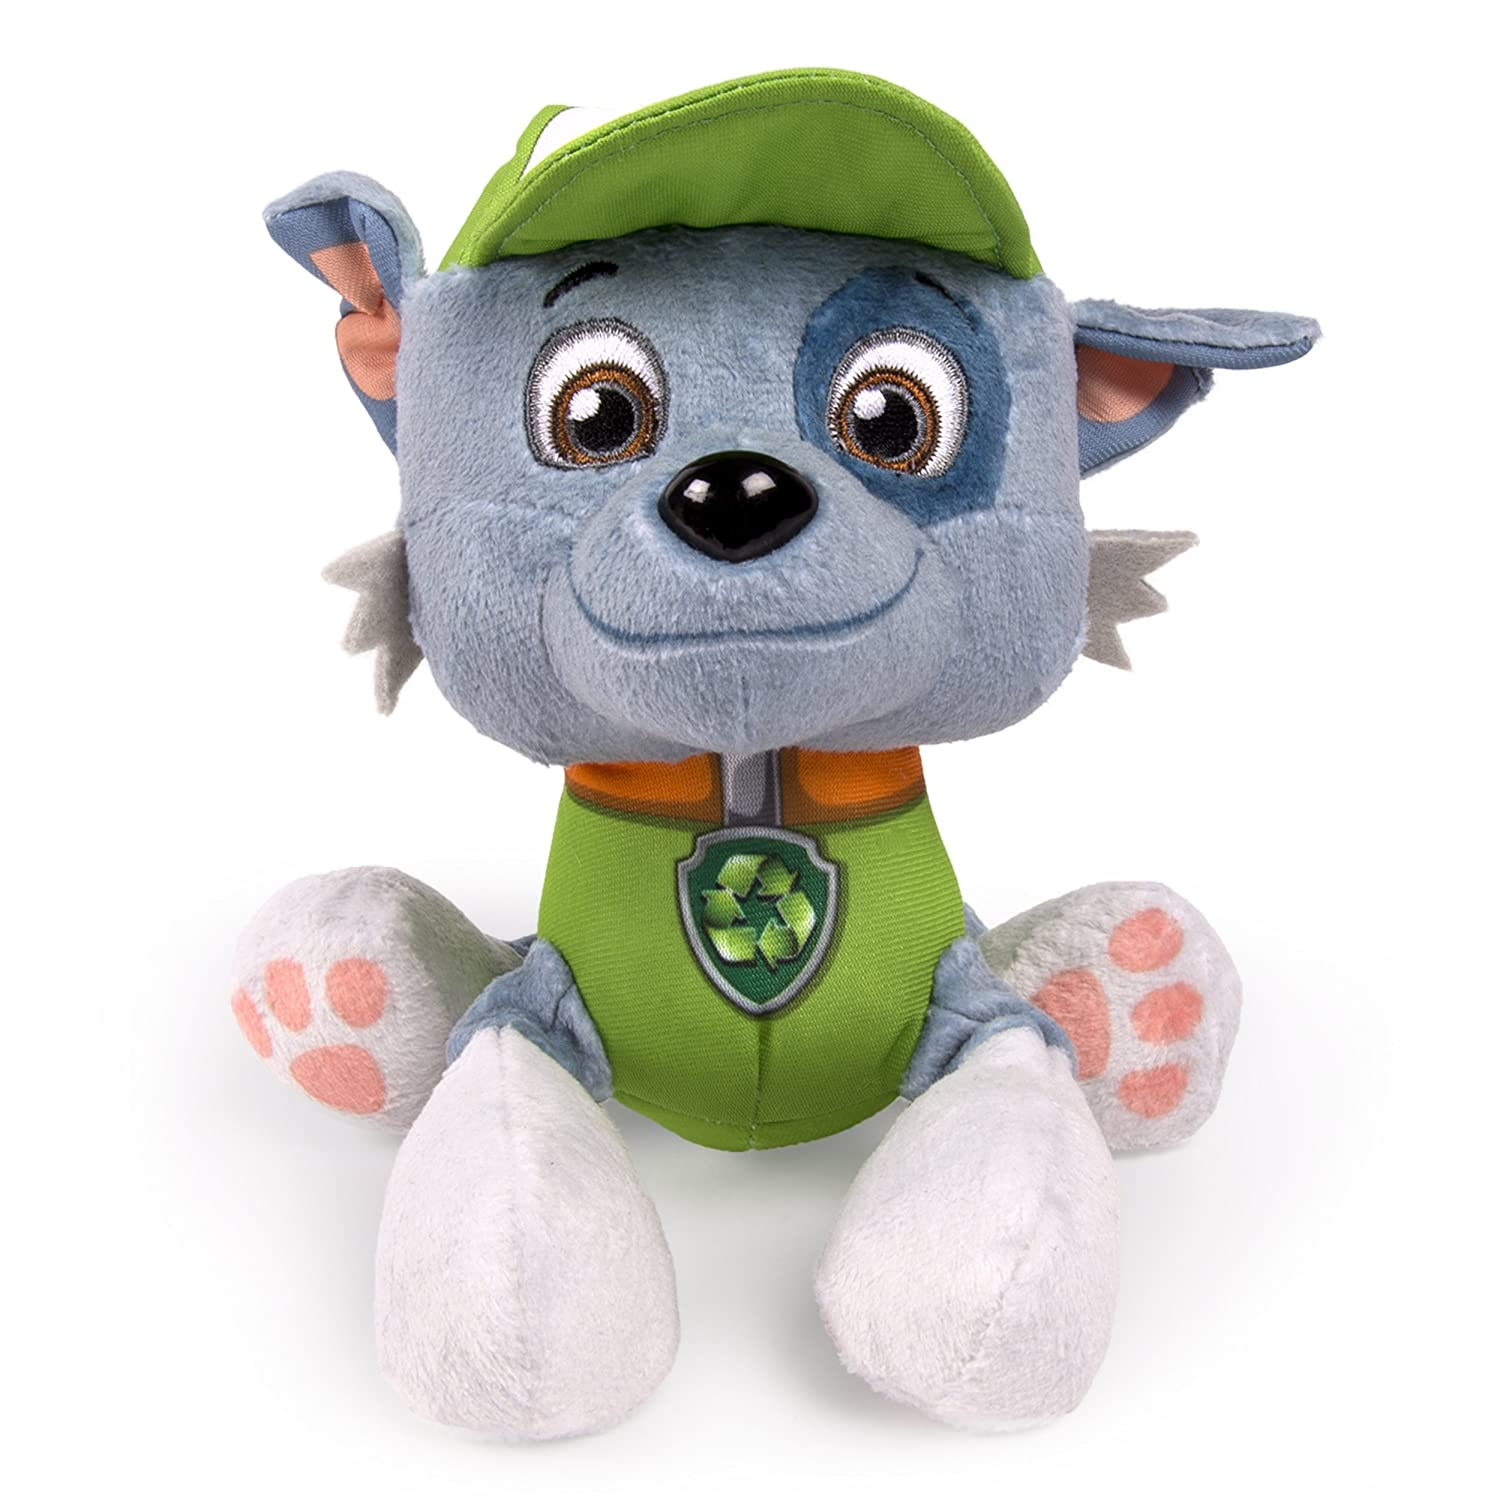 Paw Patrol Plush Pup Pals, Rocky Spin Master 6026845